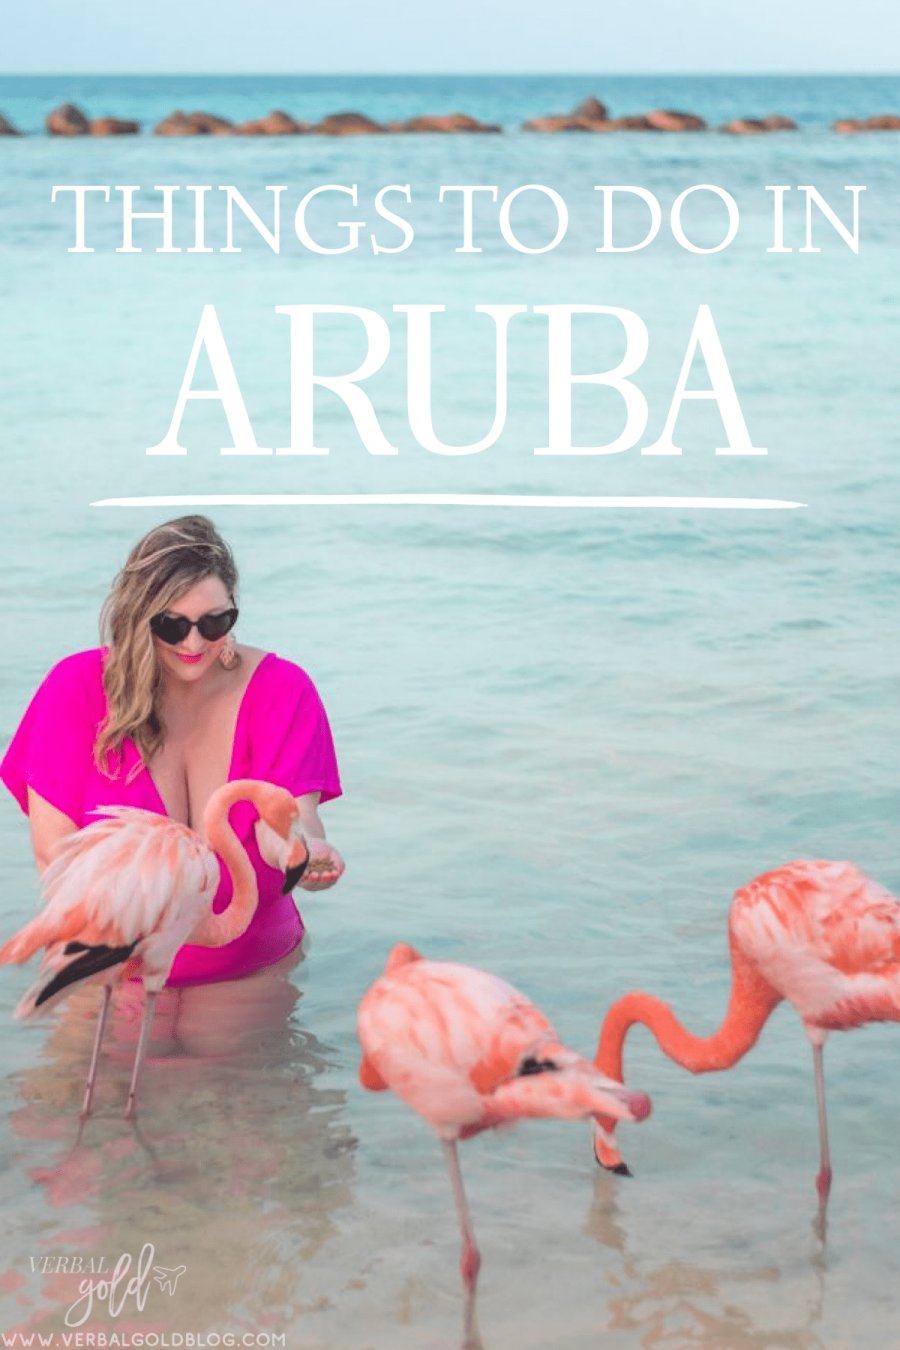 Looking for the best things to do in Aruba? There are plenty, but here are my top activities and attractions in Aruba